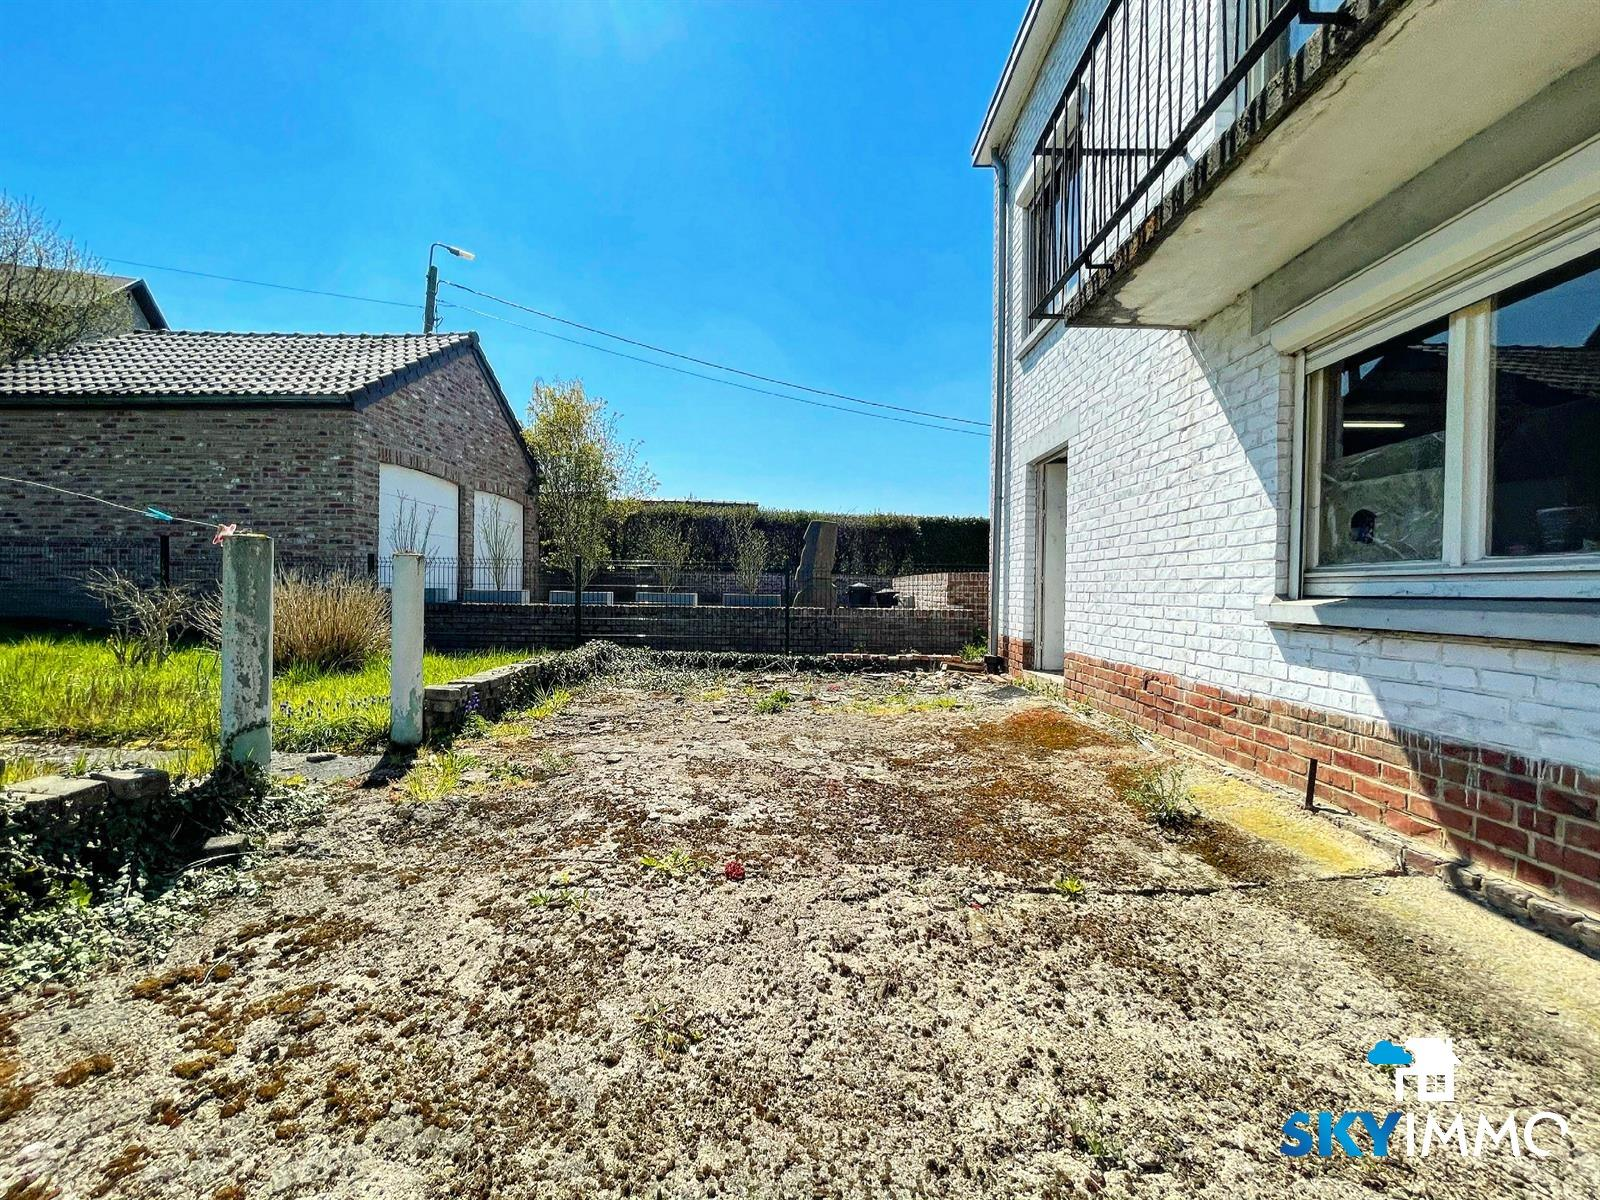 Huis - Flemalle - #4346611-14